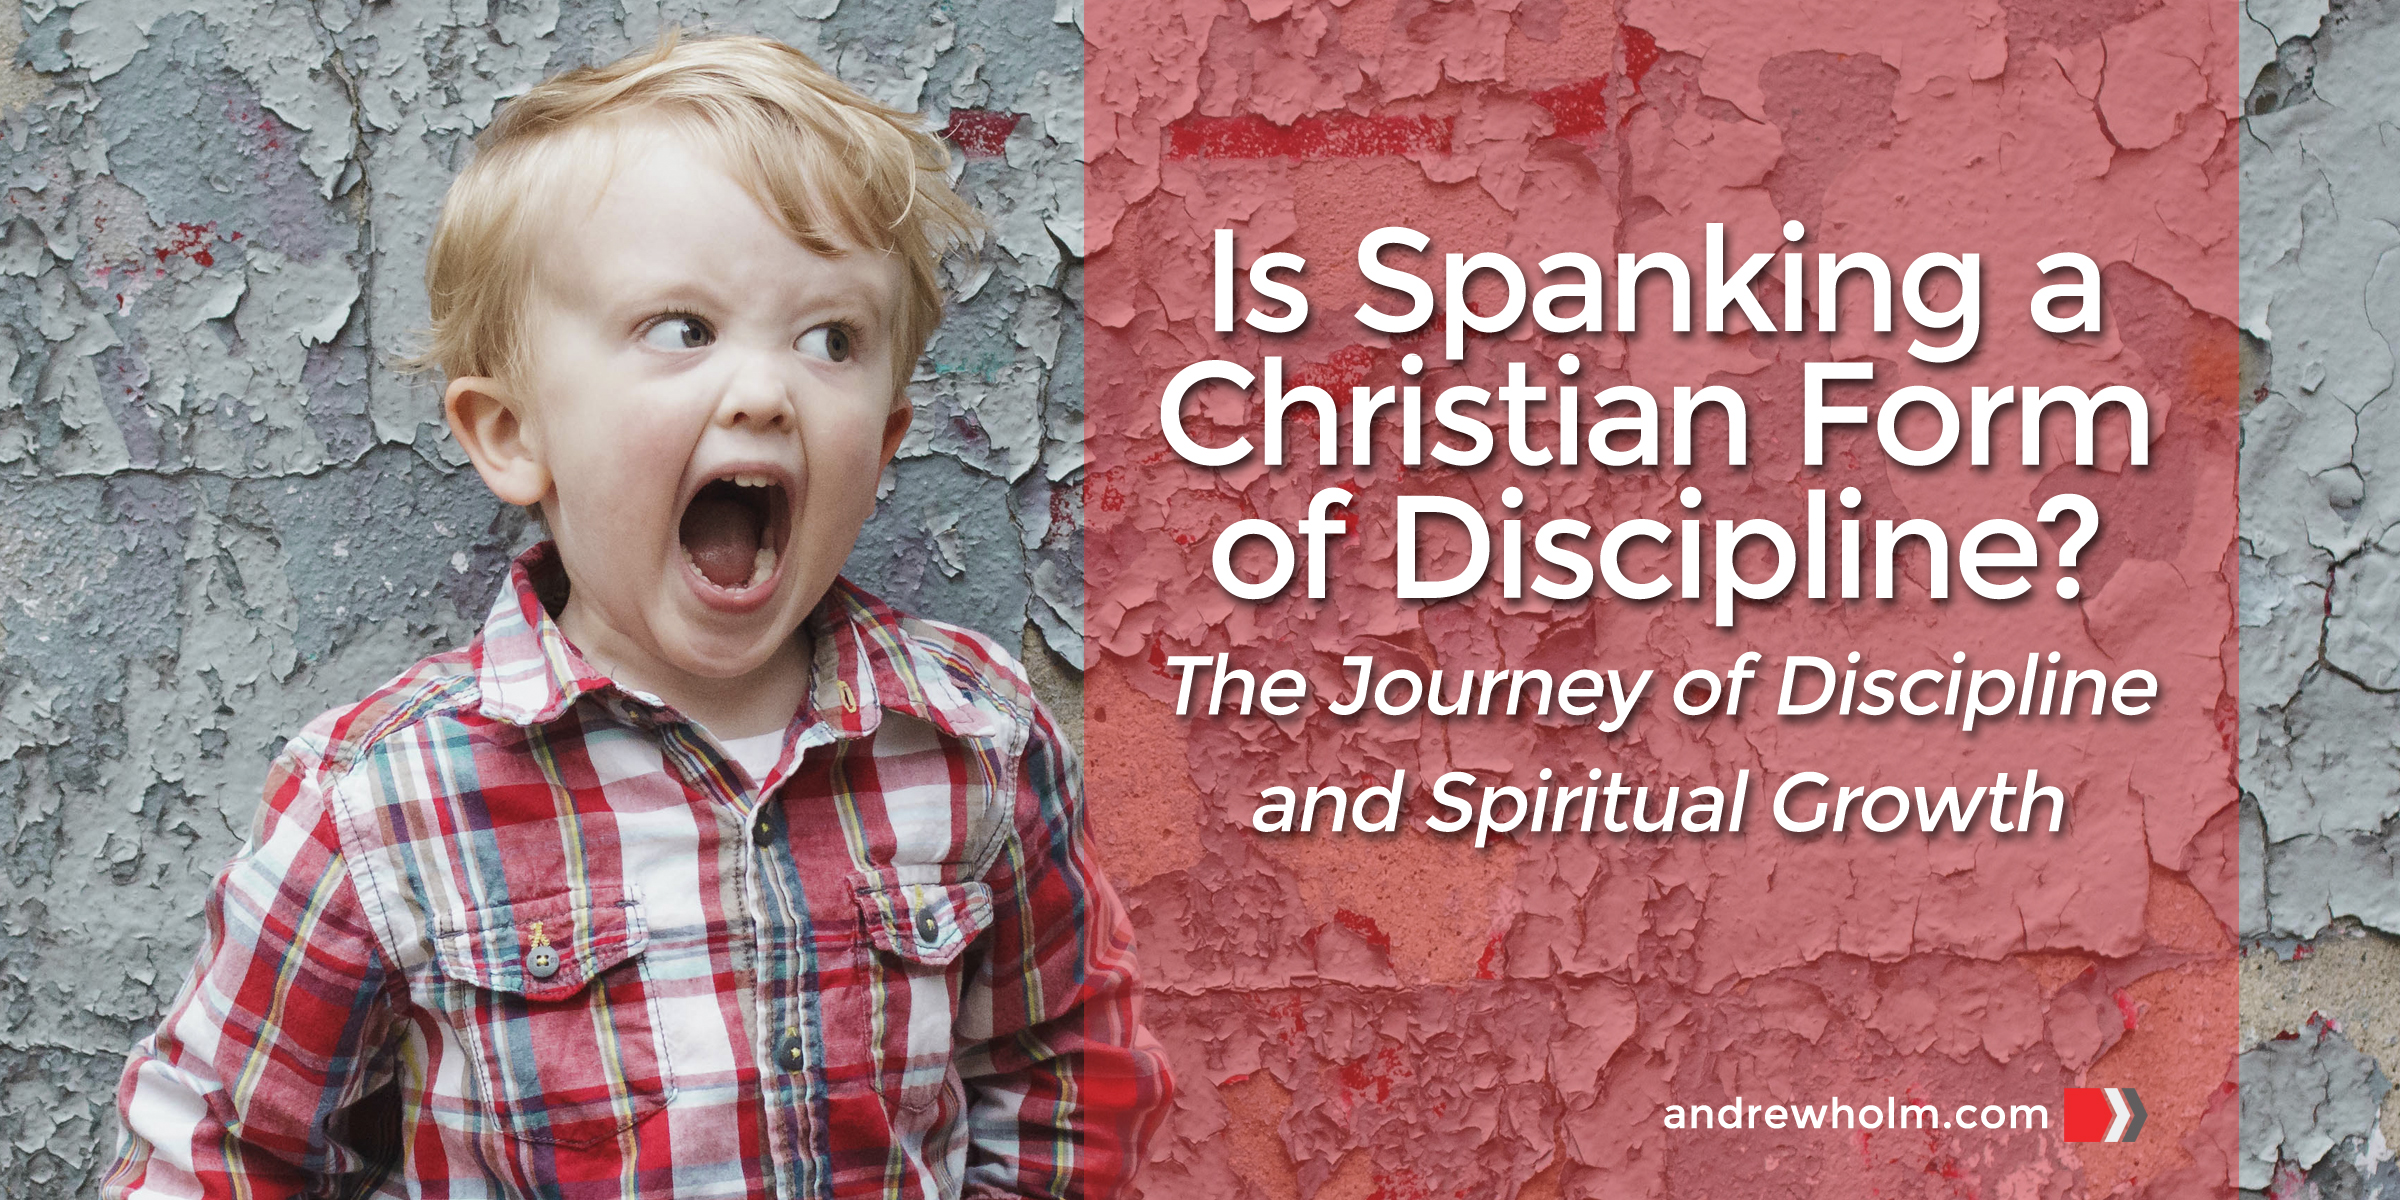 an argument against spanking children as a form of discipline Instilling discipline into a child's mind should not be done through corporal punishment with corporal punishment, the child is not able to learn how conflicts are resolved compassionately and effectively despite the pain from spanking in lieu of corporal punishment.